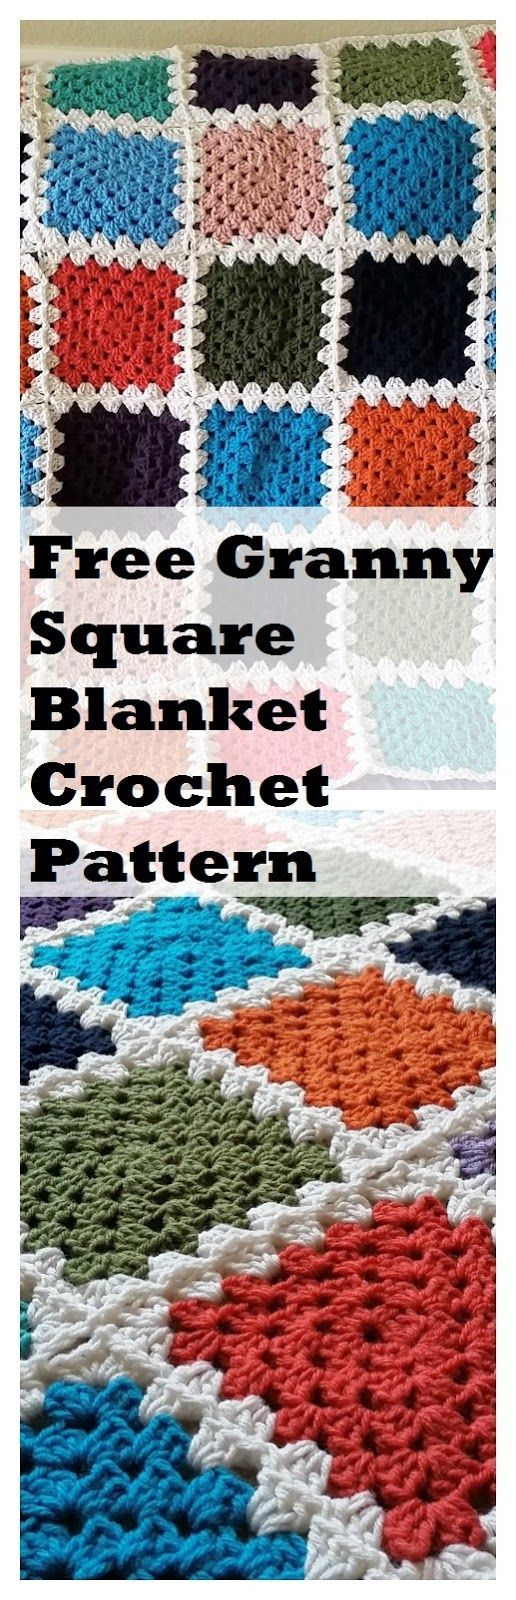 Crochet from J: A Simple Granny Square Blanket | Crochet - Afghans ...